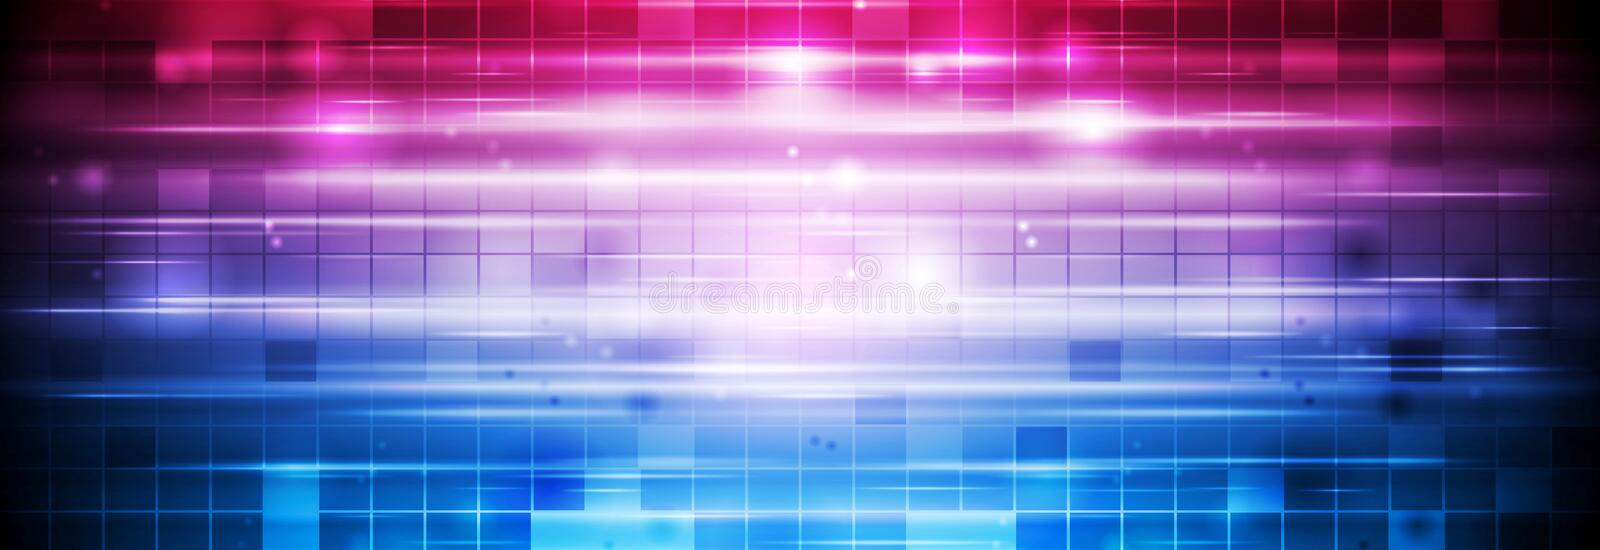 Bright blue purple abstract shiny geometric background vector illustration